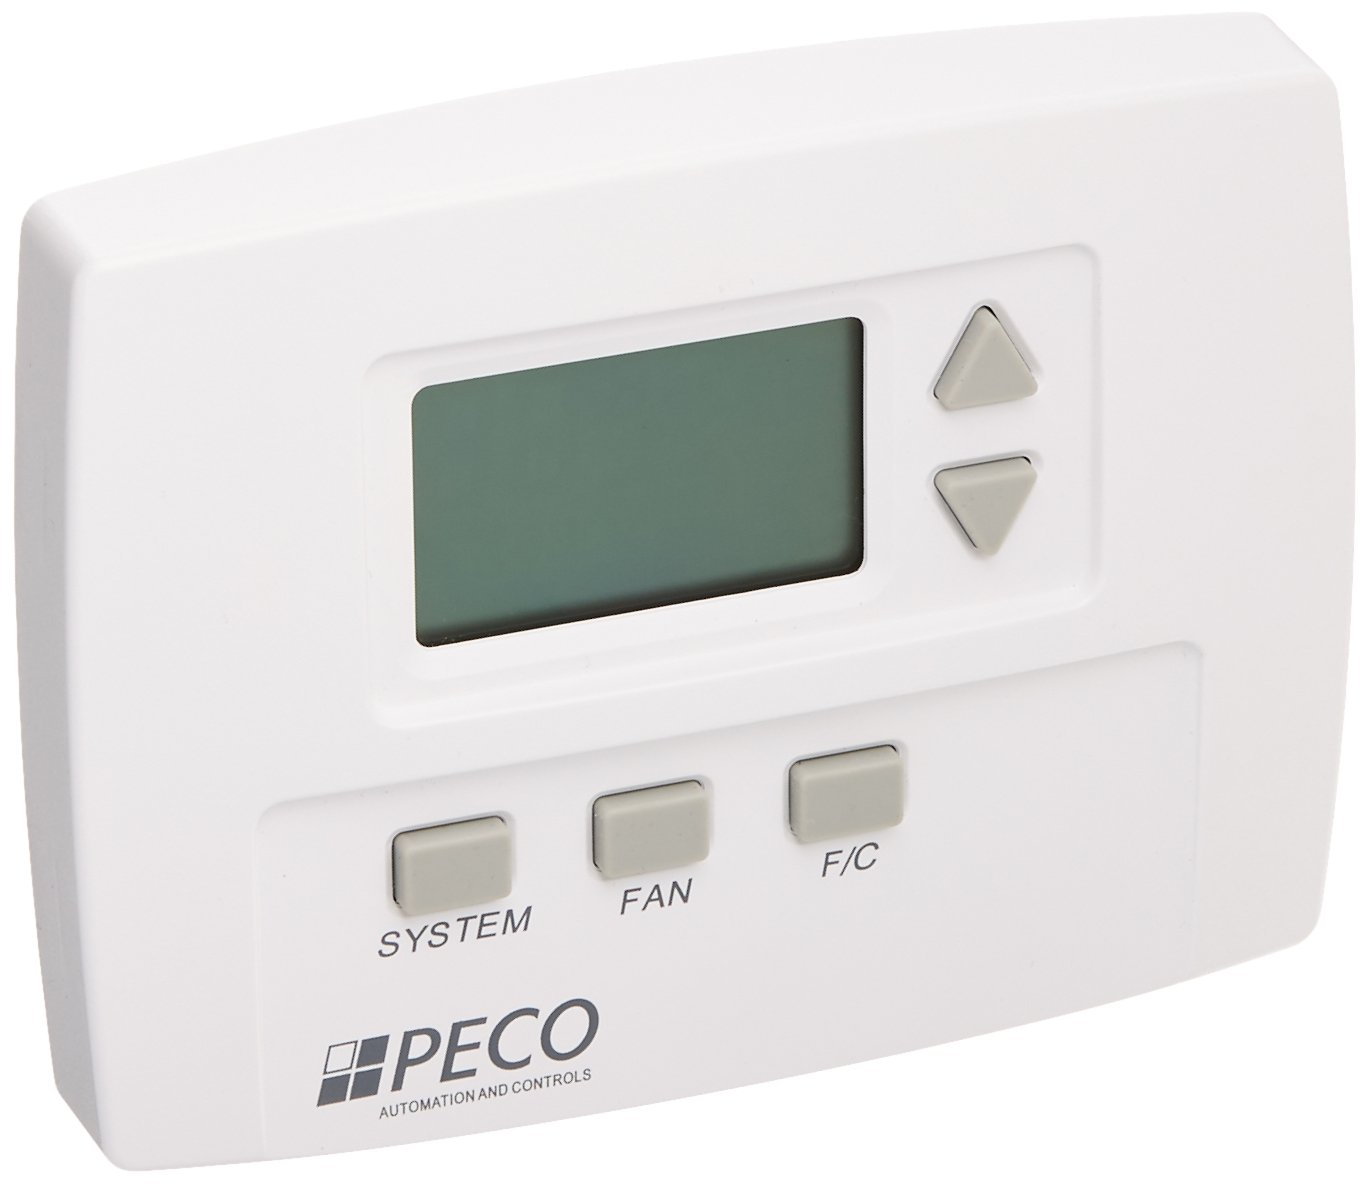 Peco TB170-001 3 Speed Staged Fan Non-Programmable Thermostat, Line Voltage, 1H/1C, White